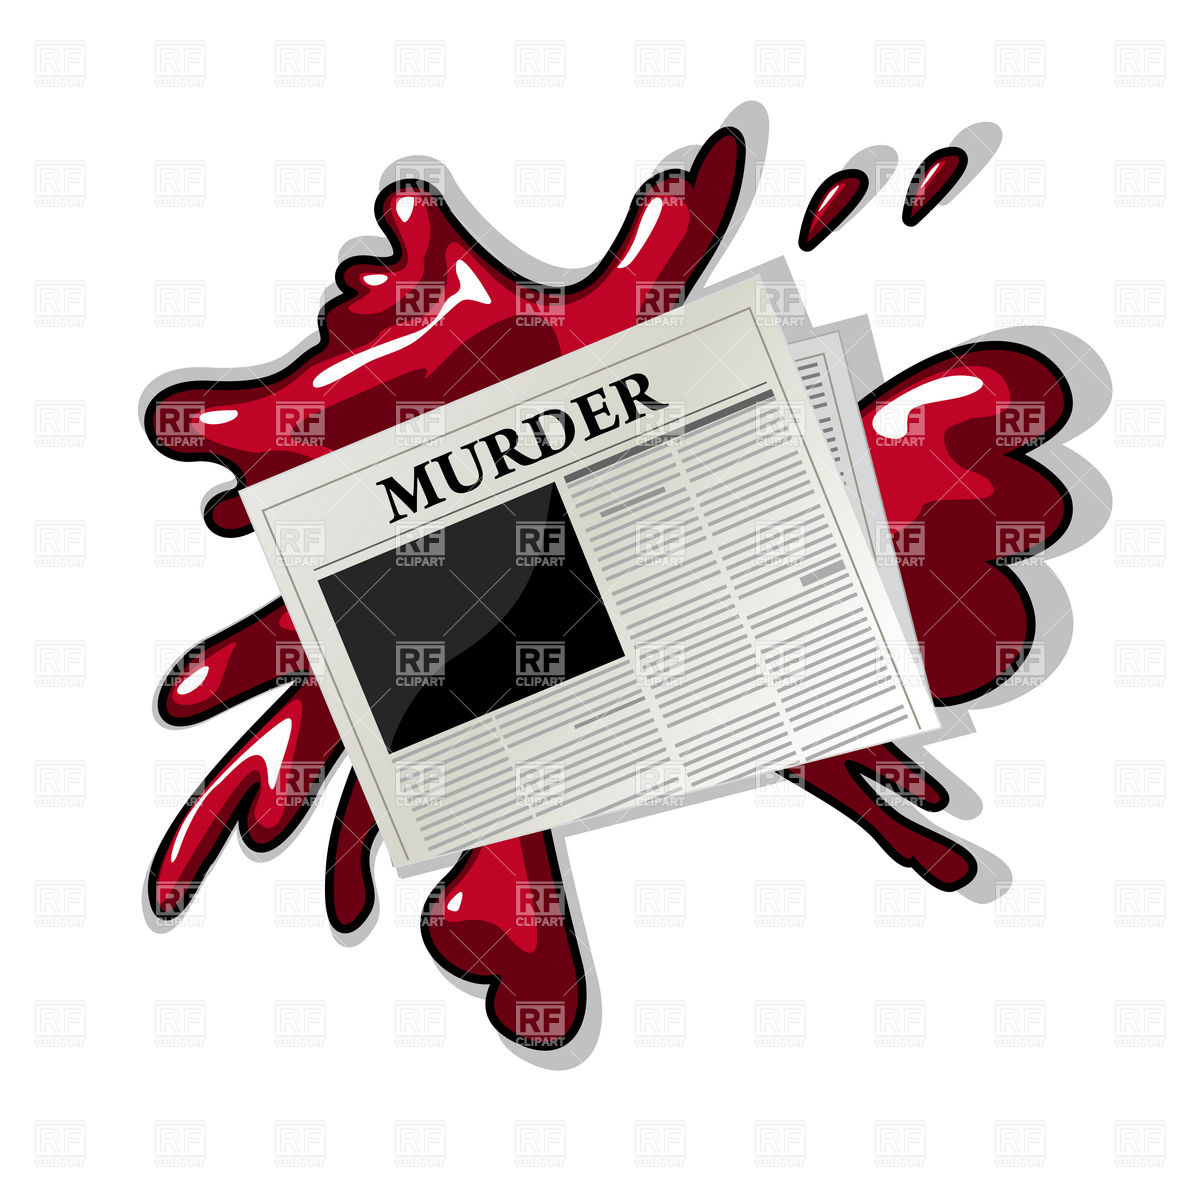 Murder Clip Art Free | Clipart Panda - Free Clipart Images